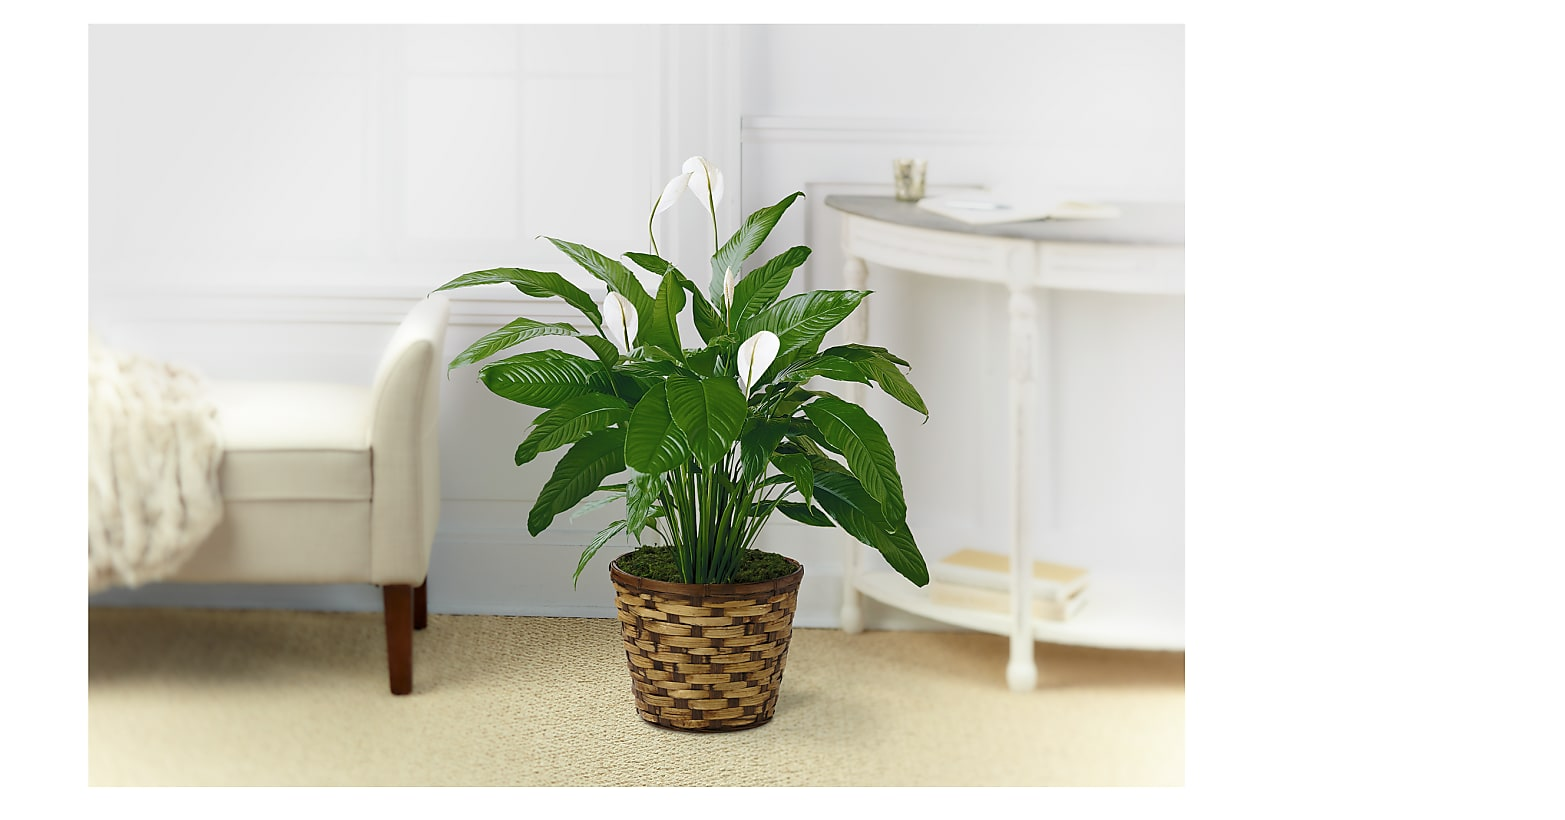 The Spathiphyllum Plant - Image 1 Of 2